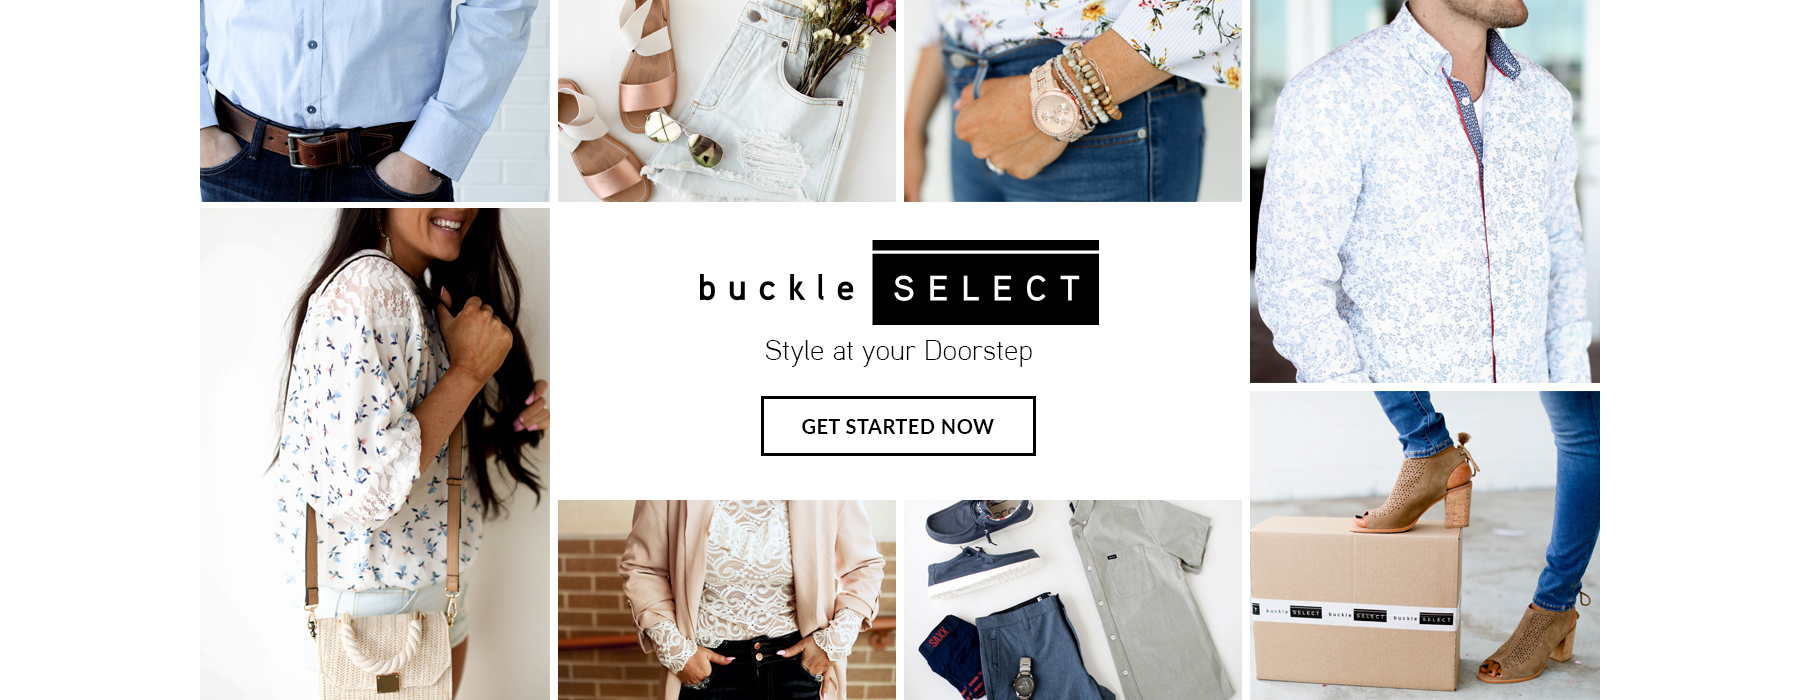 Buckle Select - Woman wearing a white floral top and a man wearing a blue button up long sleeve shirt